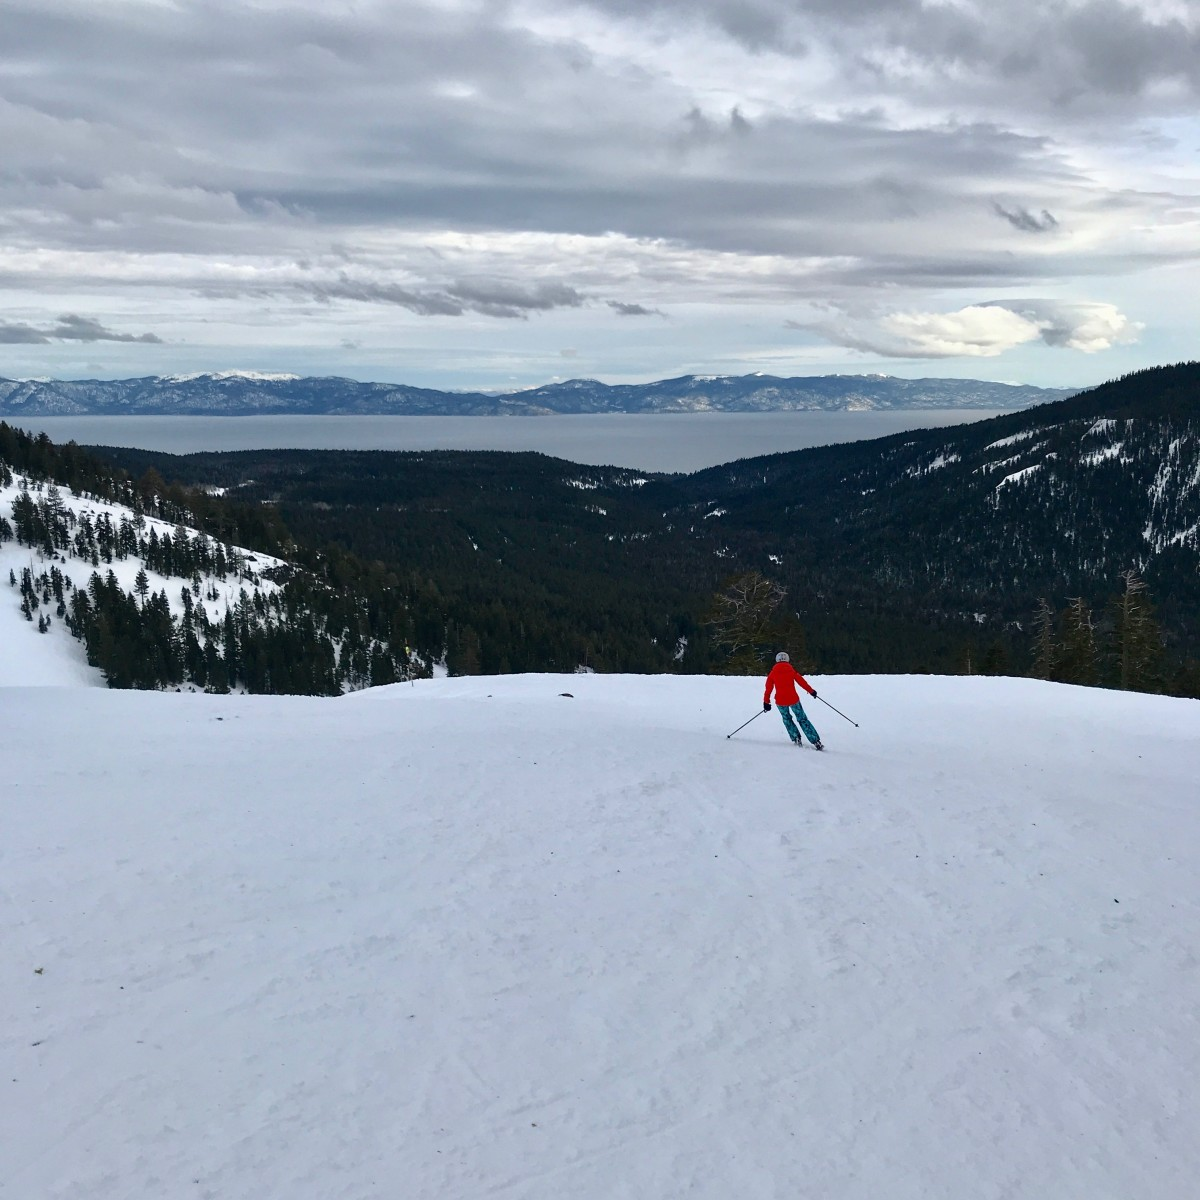 Skiing and riding at Squaw Alpine